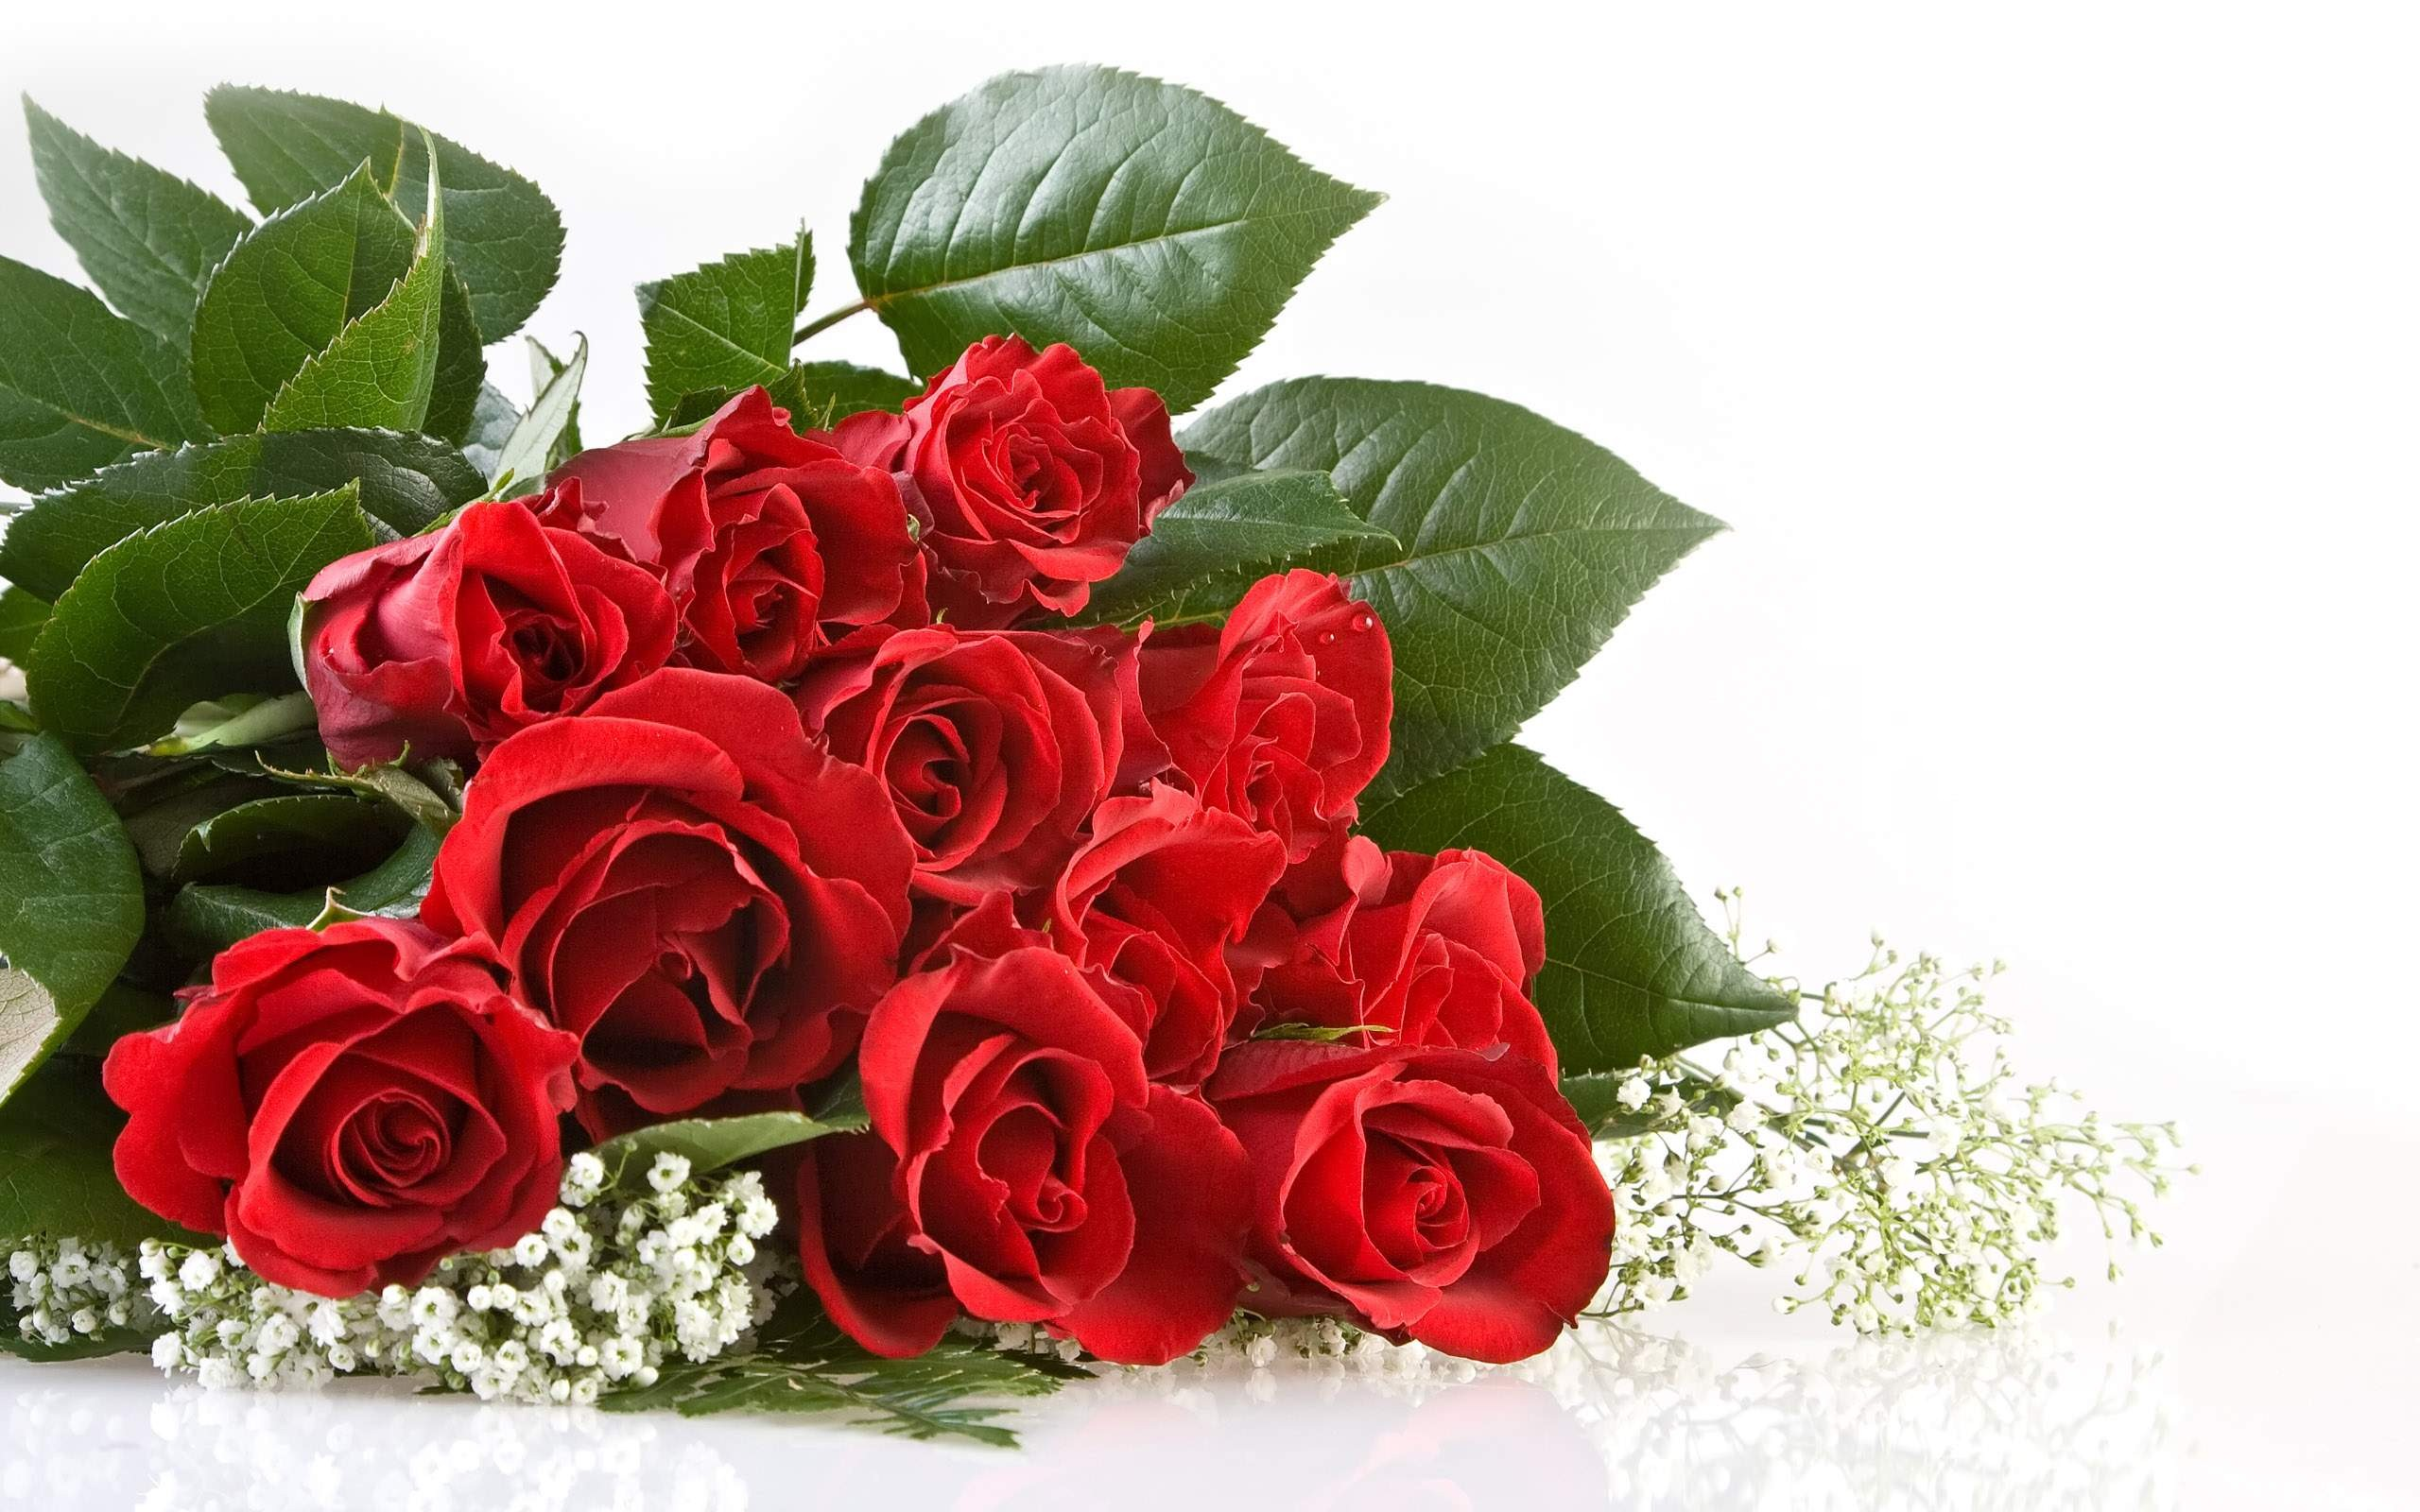 Red Rose Wallpapers Free Download Group (70+)